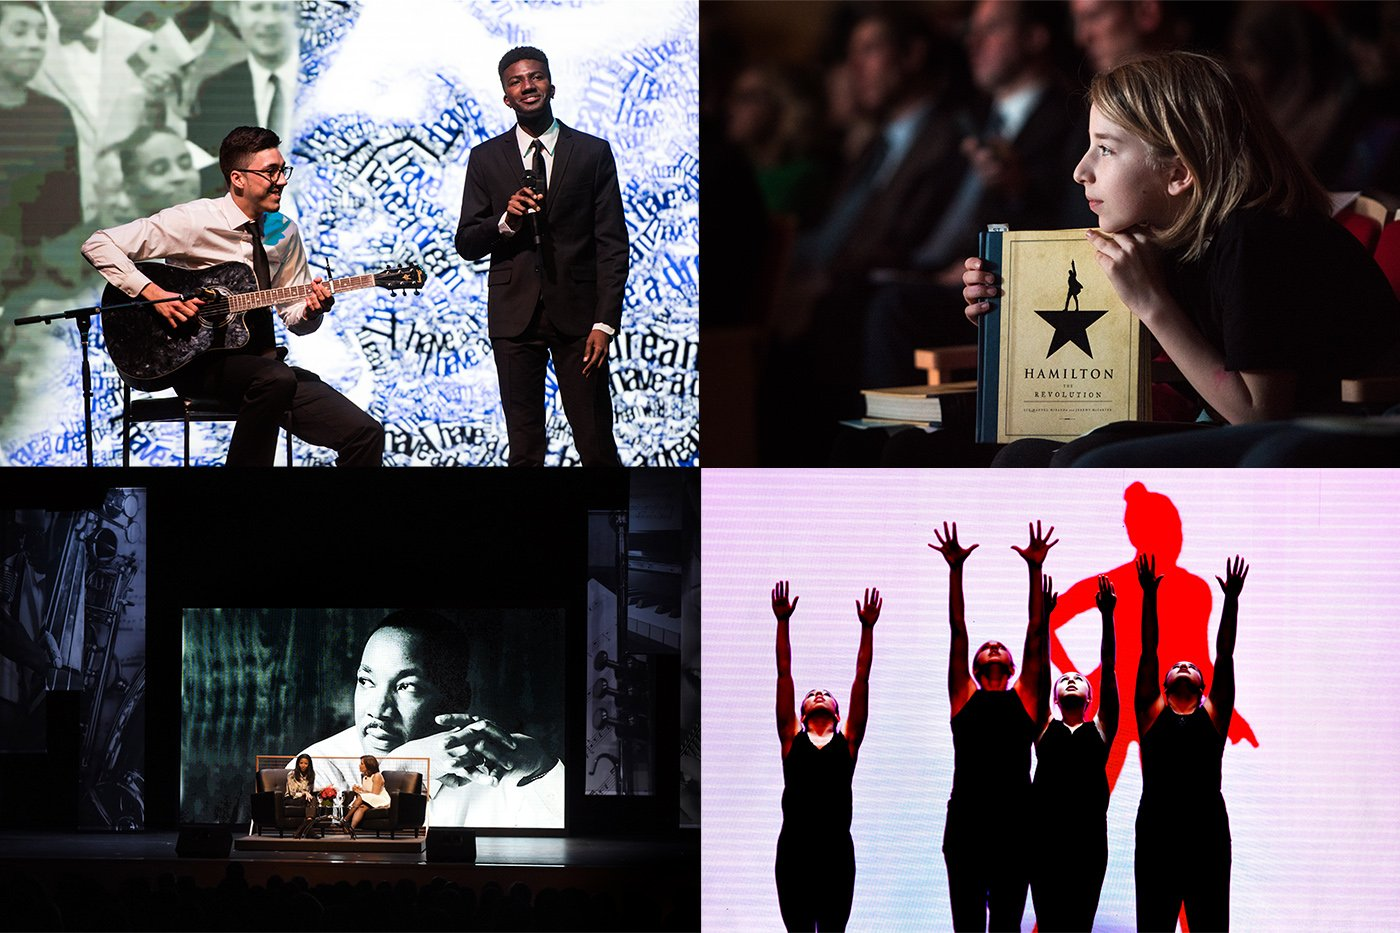 In case you missed it, here are the highlights from our @Northeastern #MLKDay event https://t.co/yDsvM54DwC https://t.co/CnwAT6jVVf